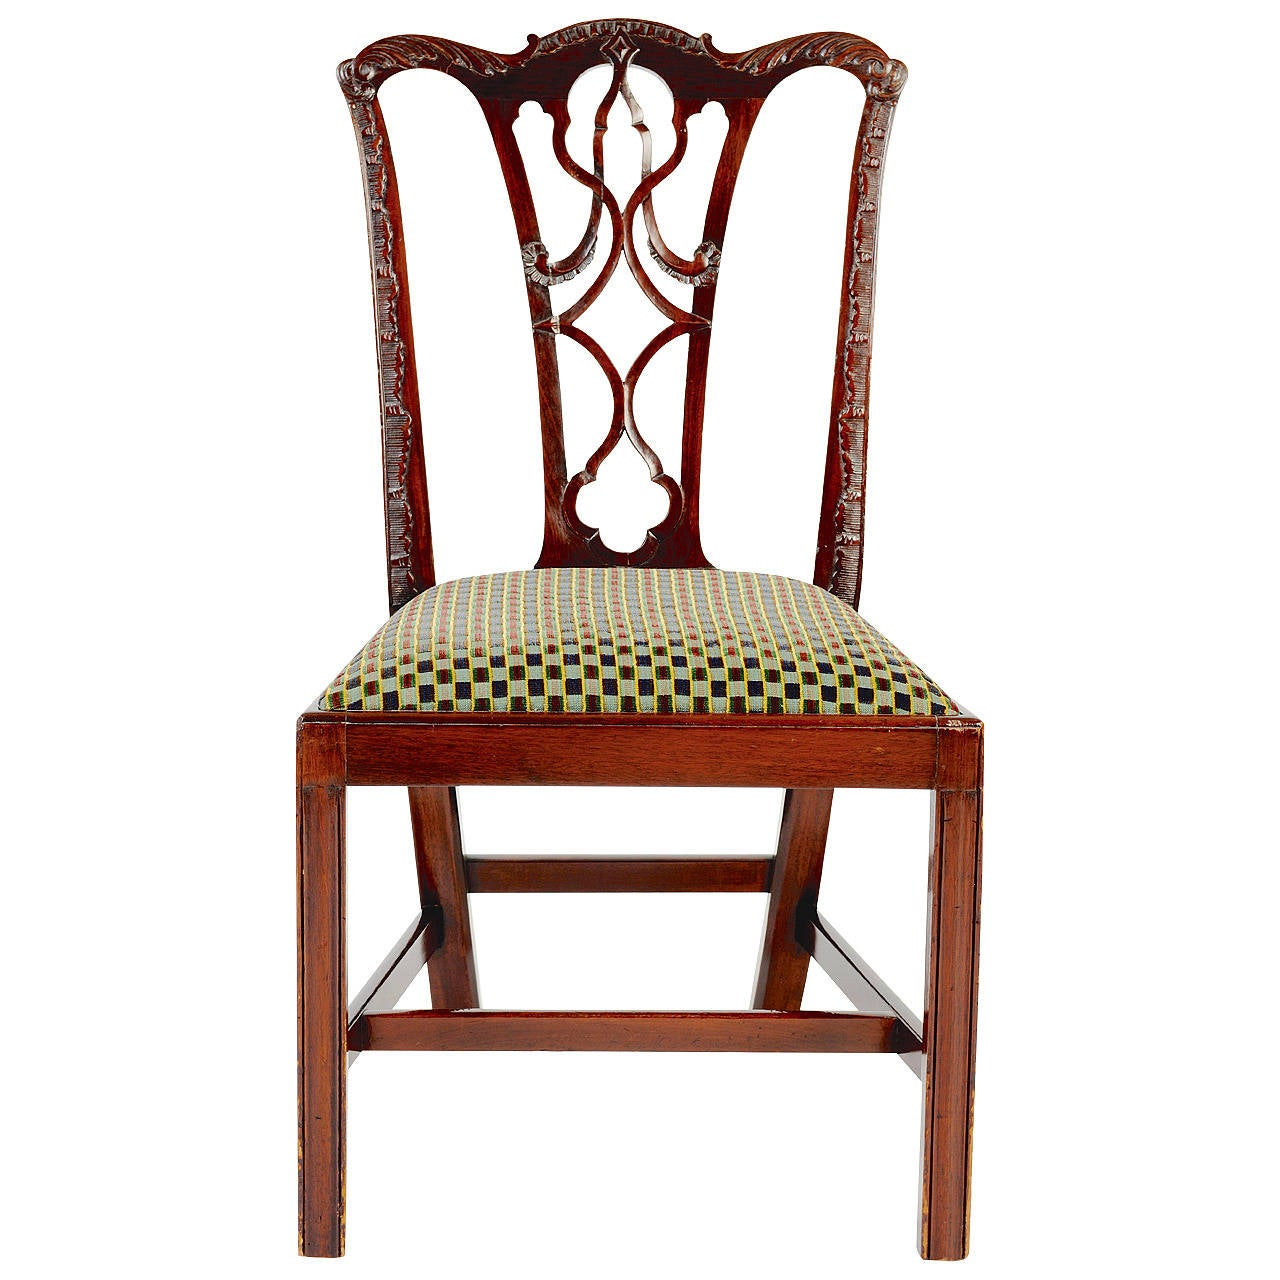 Chippendale Furniture: English Mahogany Side Chair In The Chippendale Style, 19th